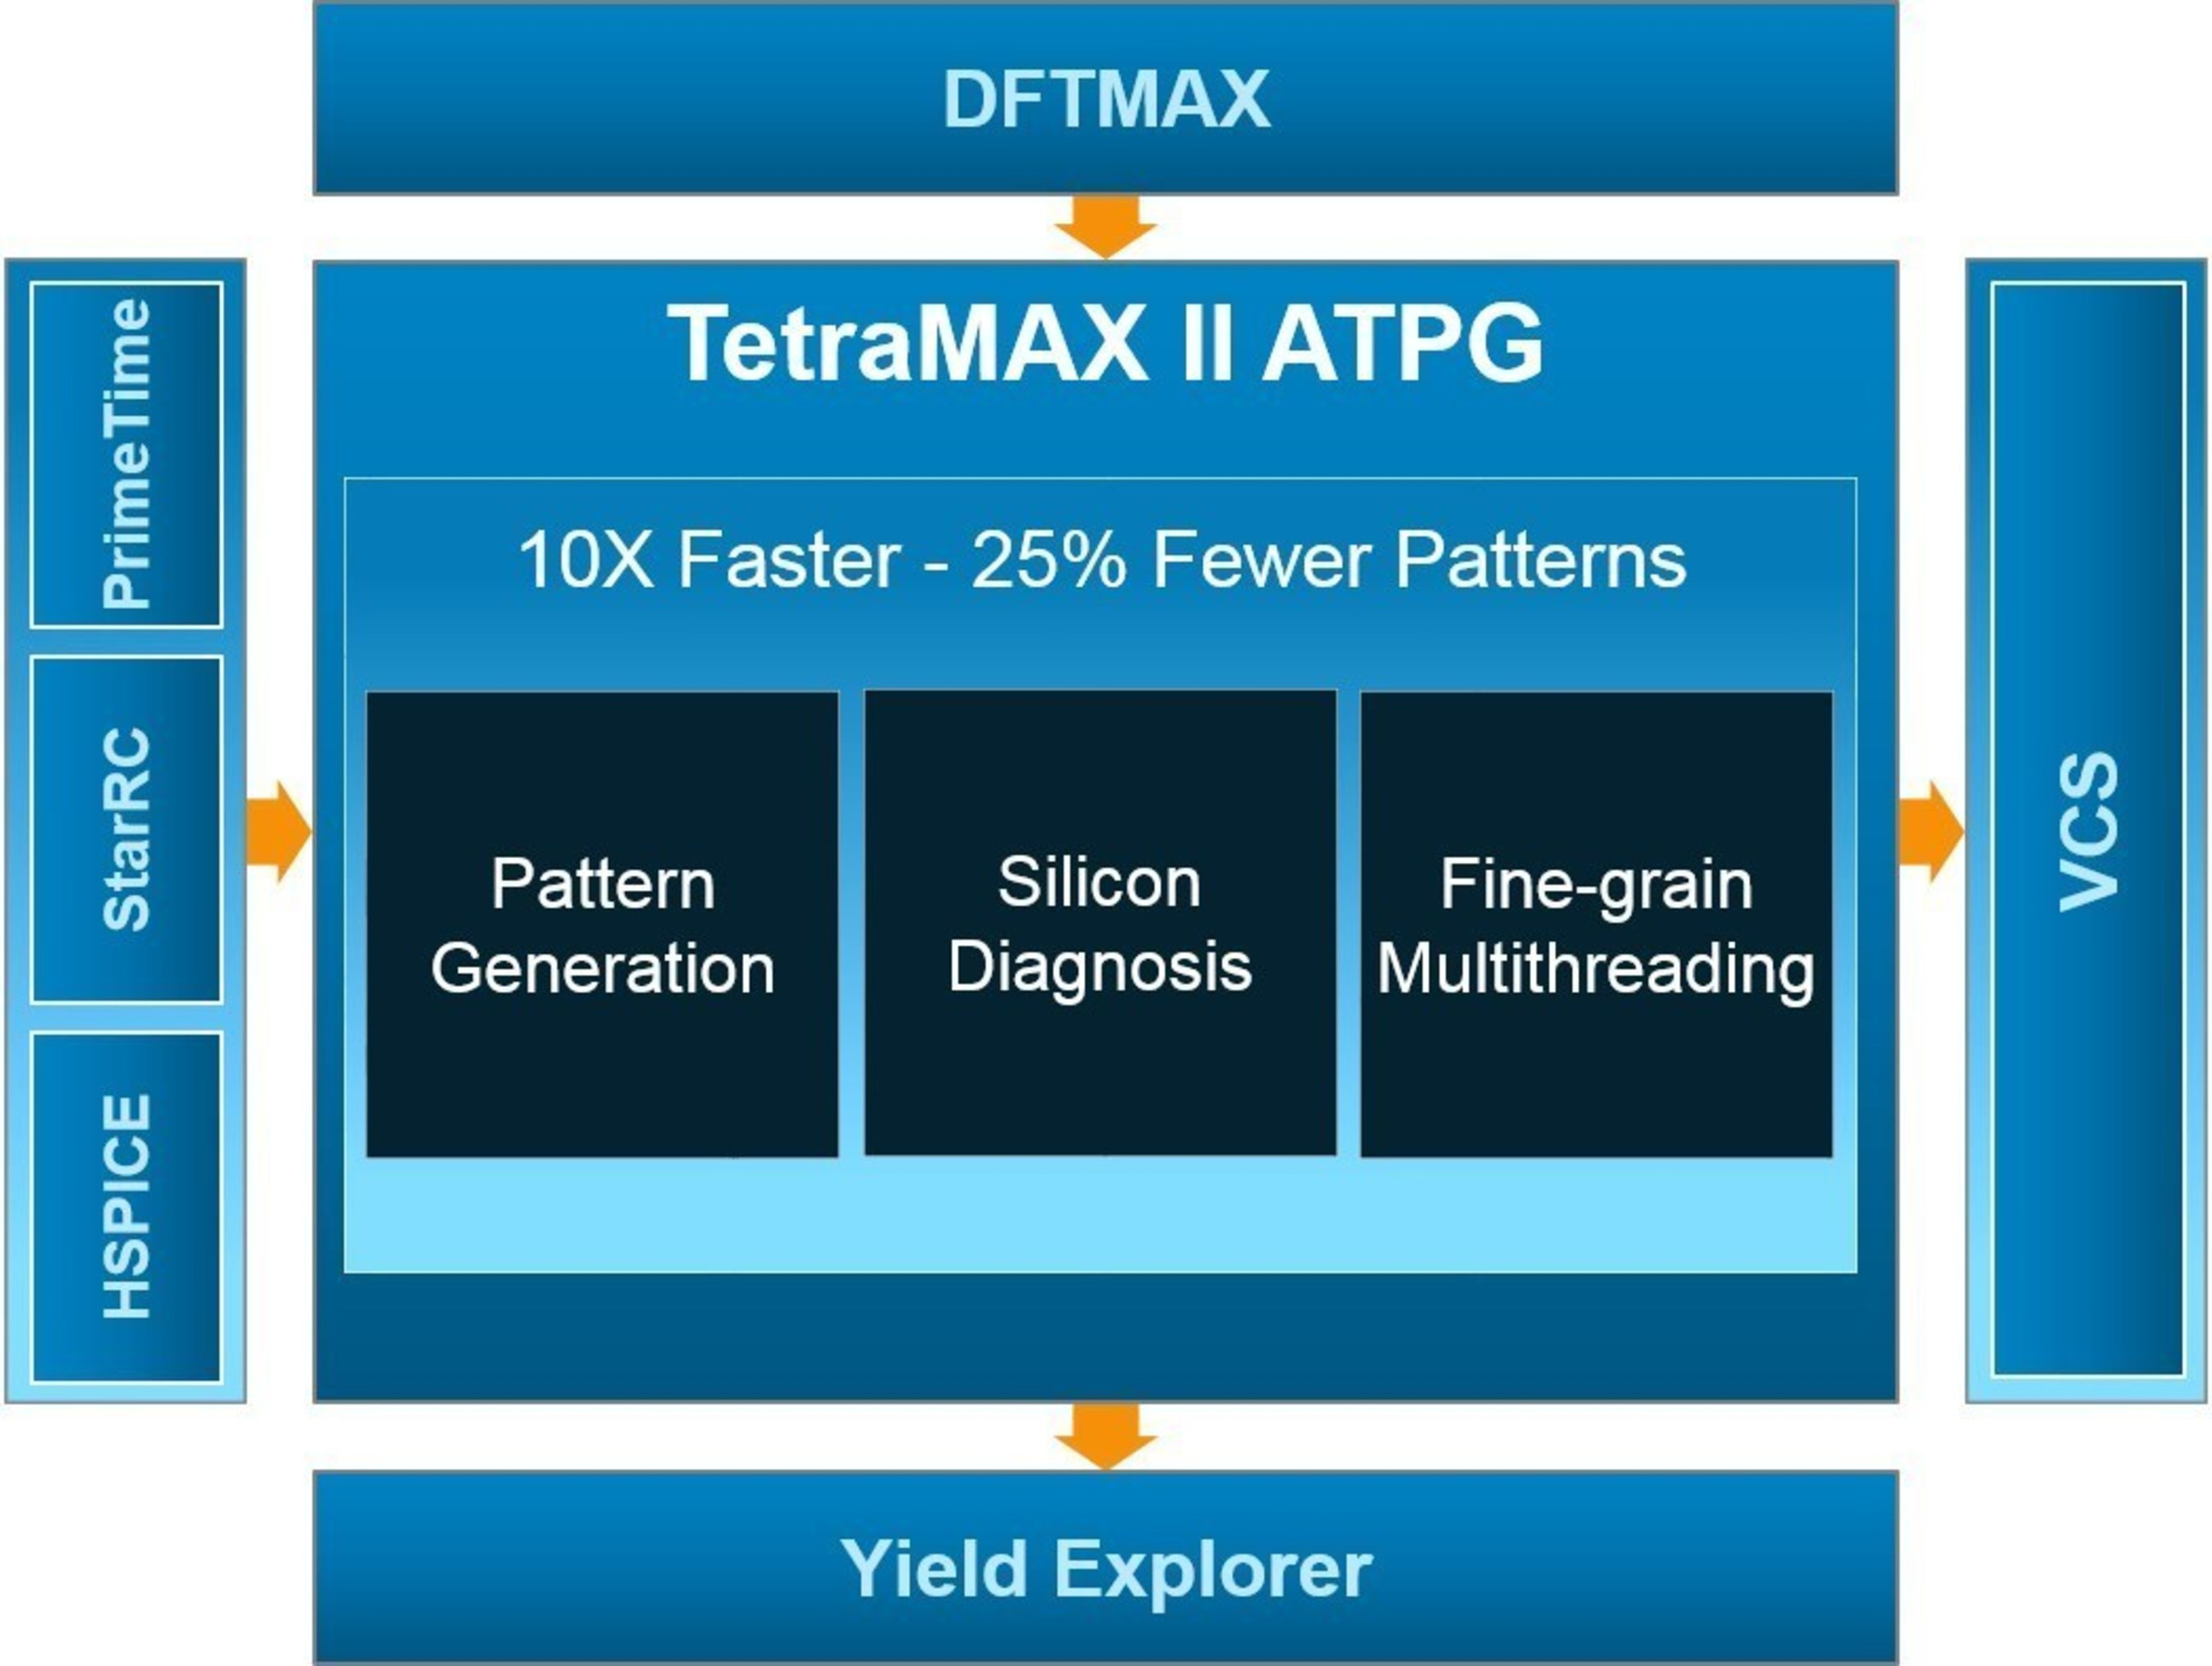 TetraMAX II is built on new engines to reduce patterns by 25% with an order of magnitude faster runtime.